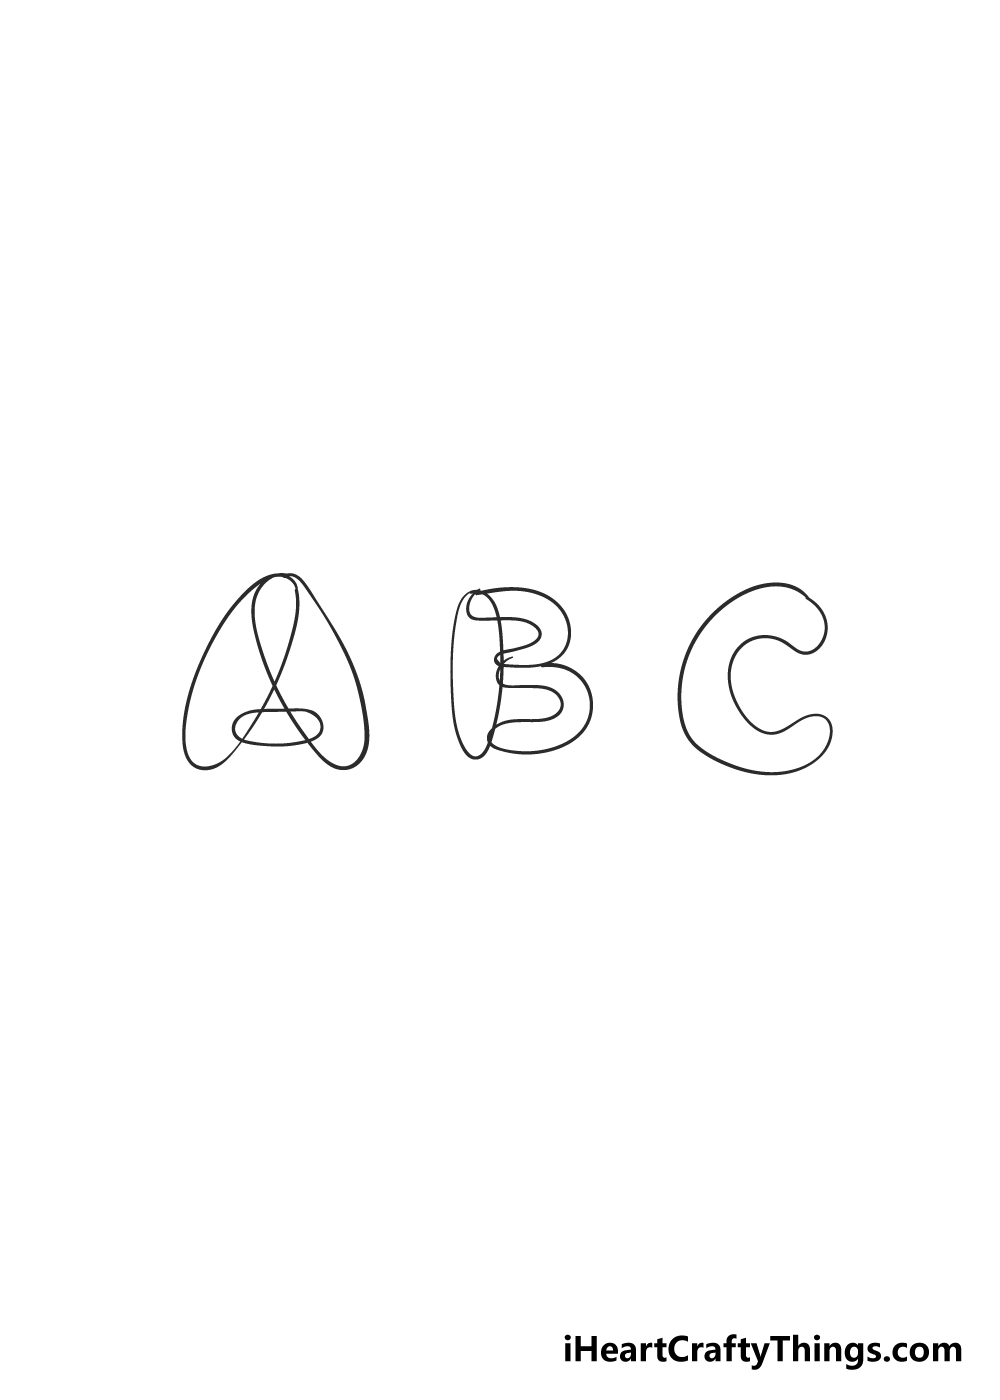 bubble letters drawing step 2